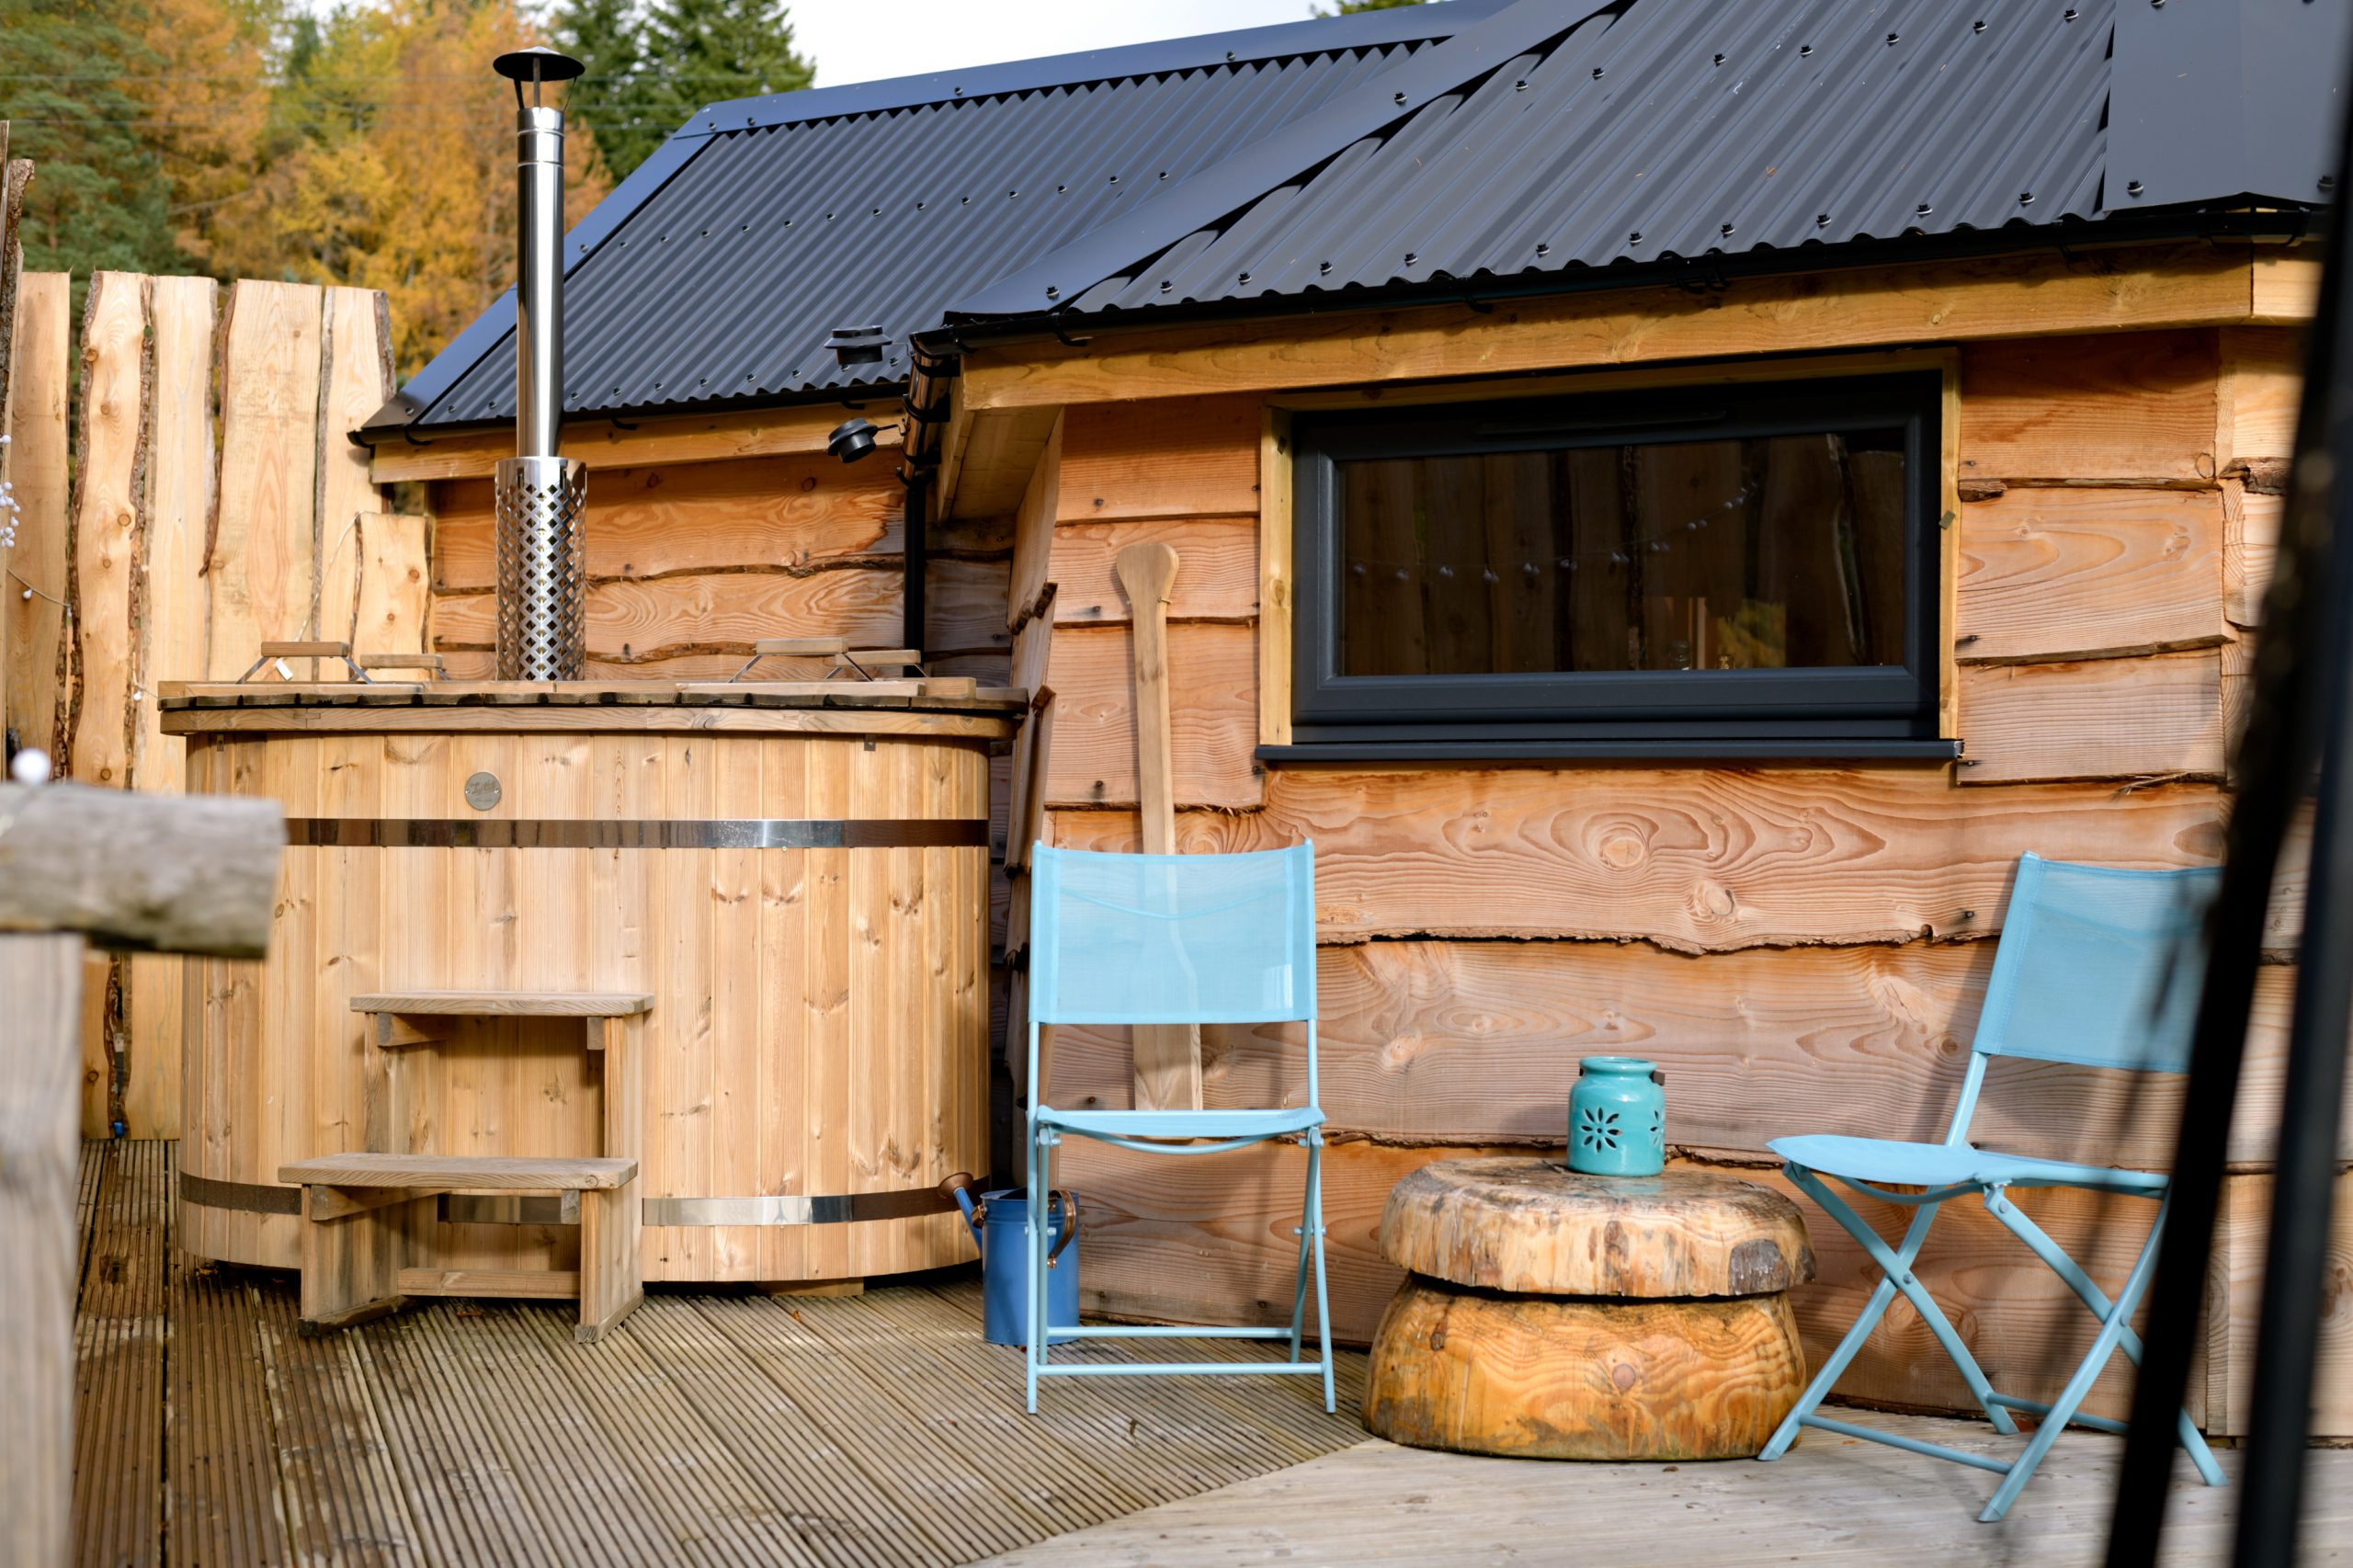 The Wee Bee Hive Hot Tub